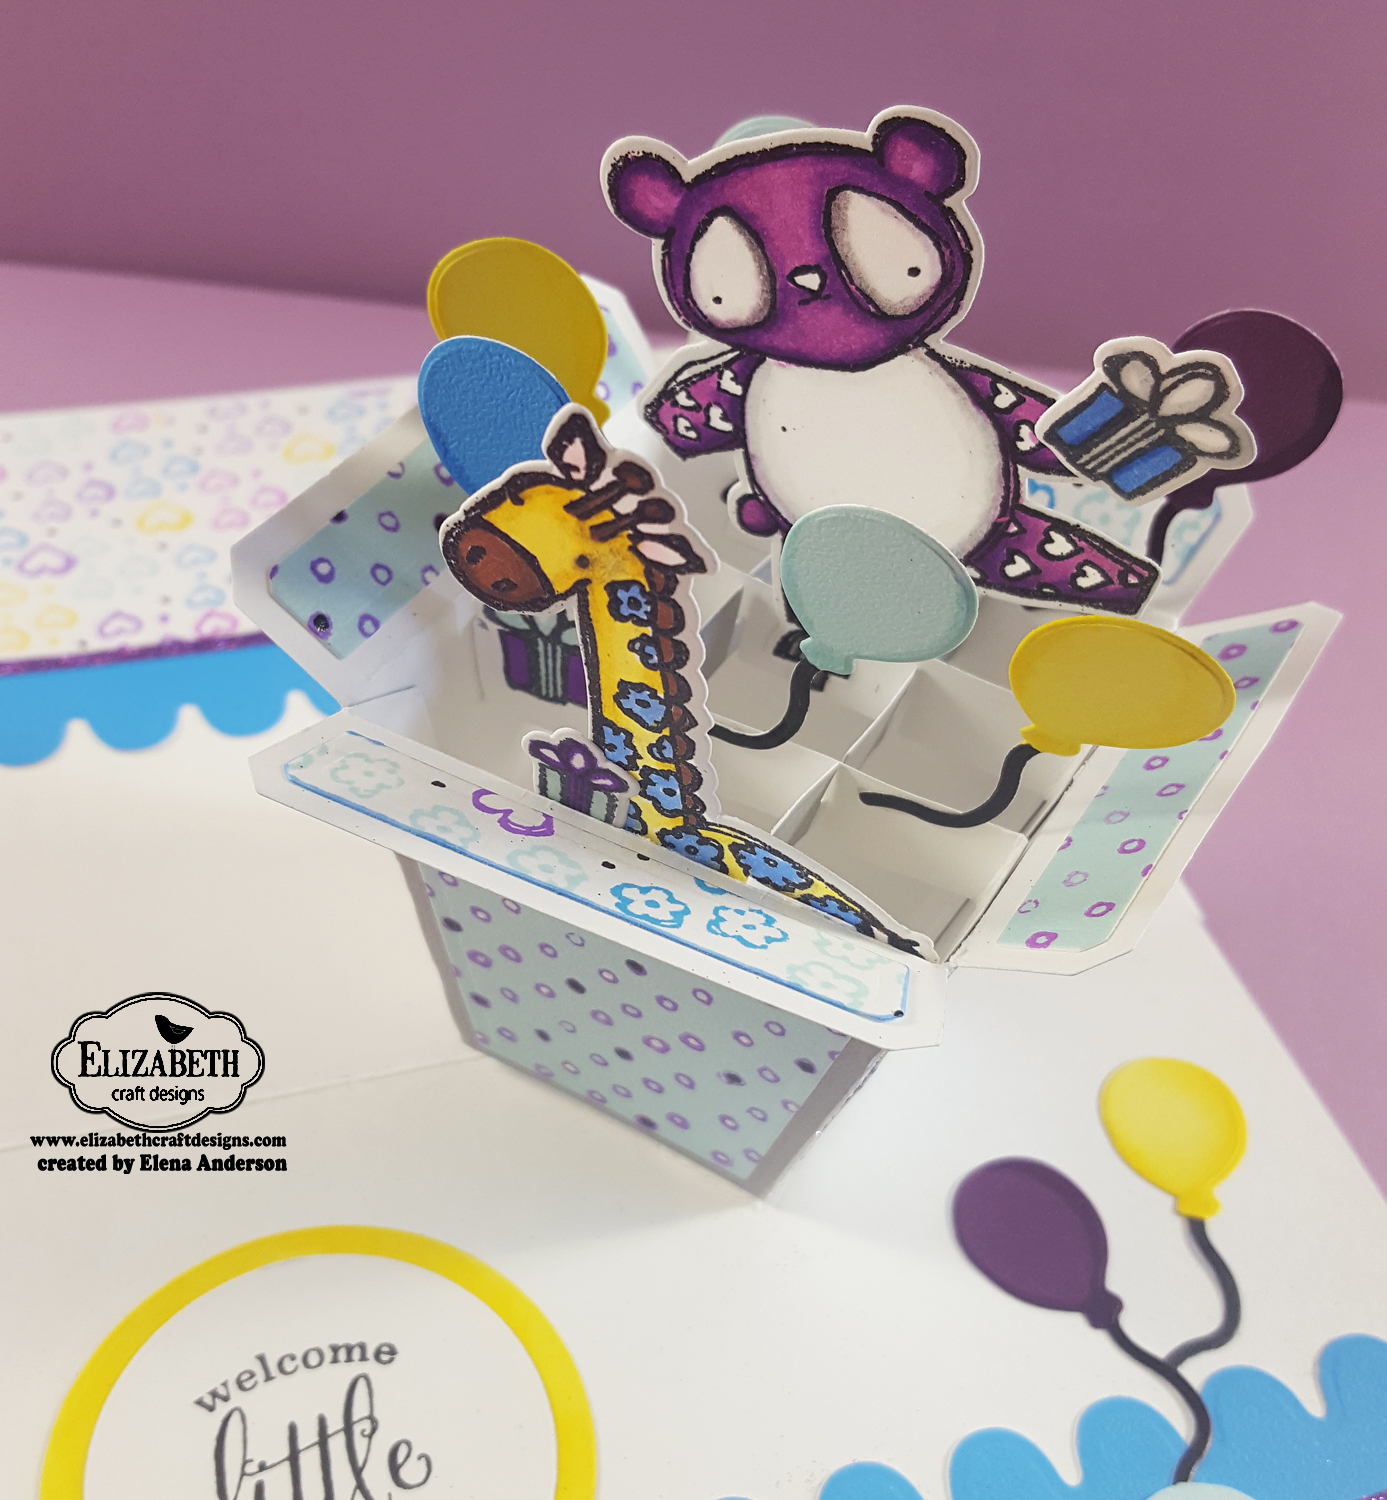 Elizabeth Craft Designs Designers Coloring Challenge - Inside Out Detail